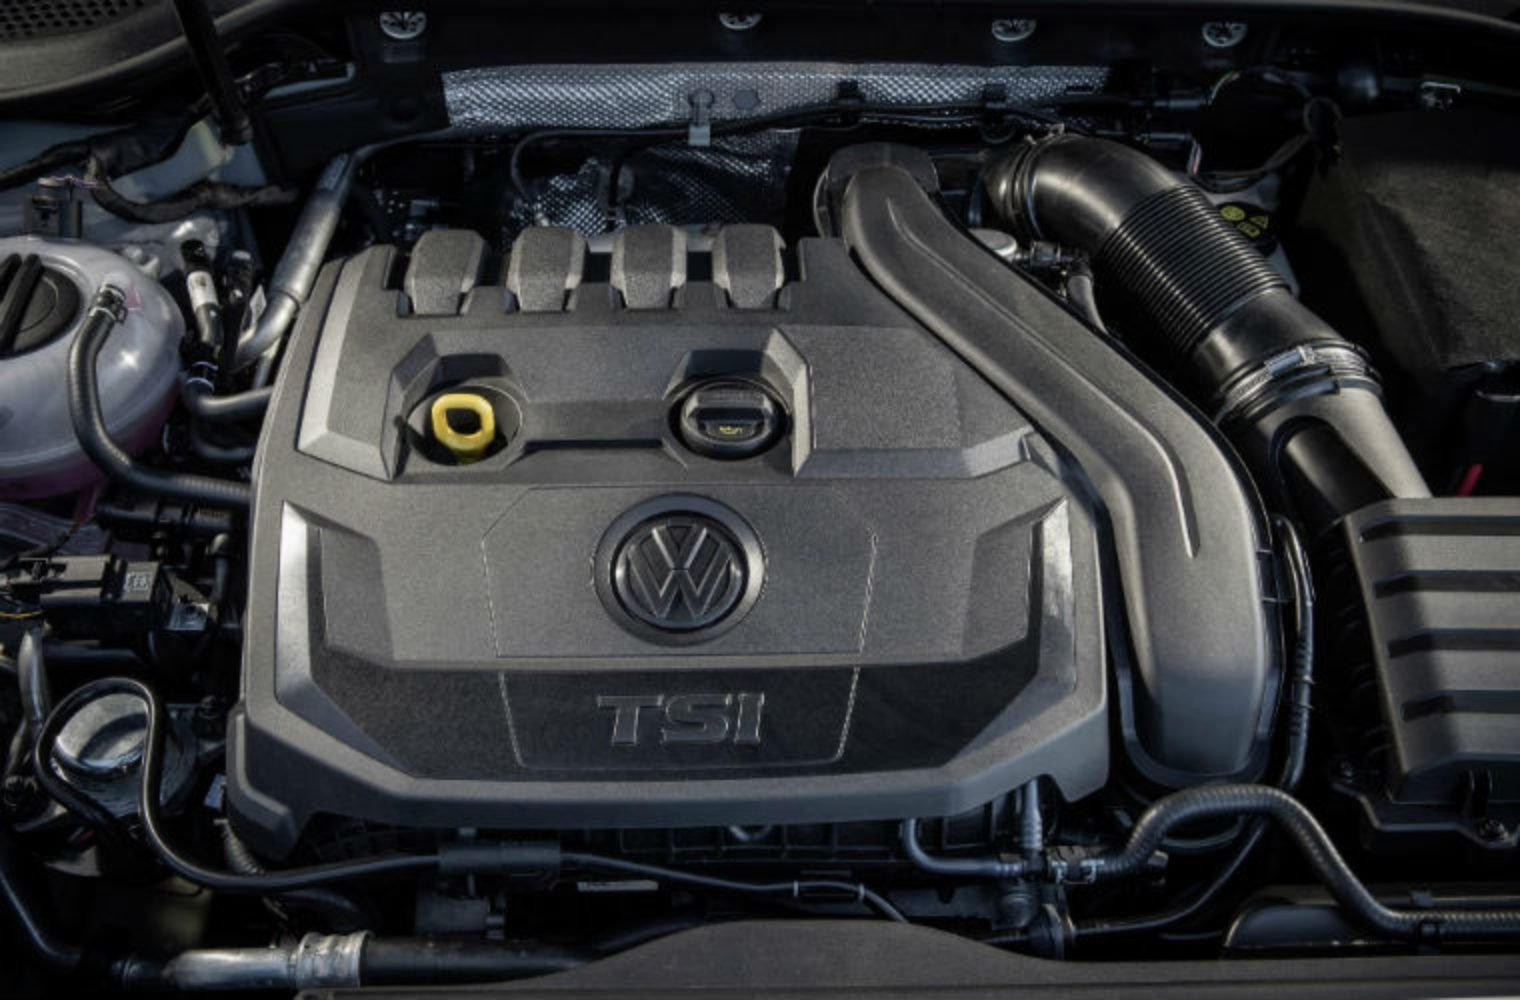 VW admits problem with 1 5 TSI Evo cars but is yet to